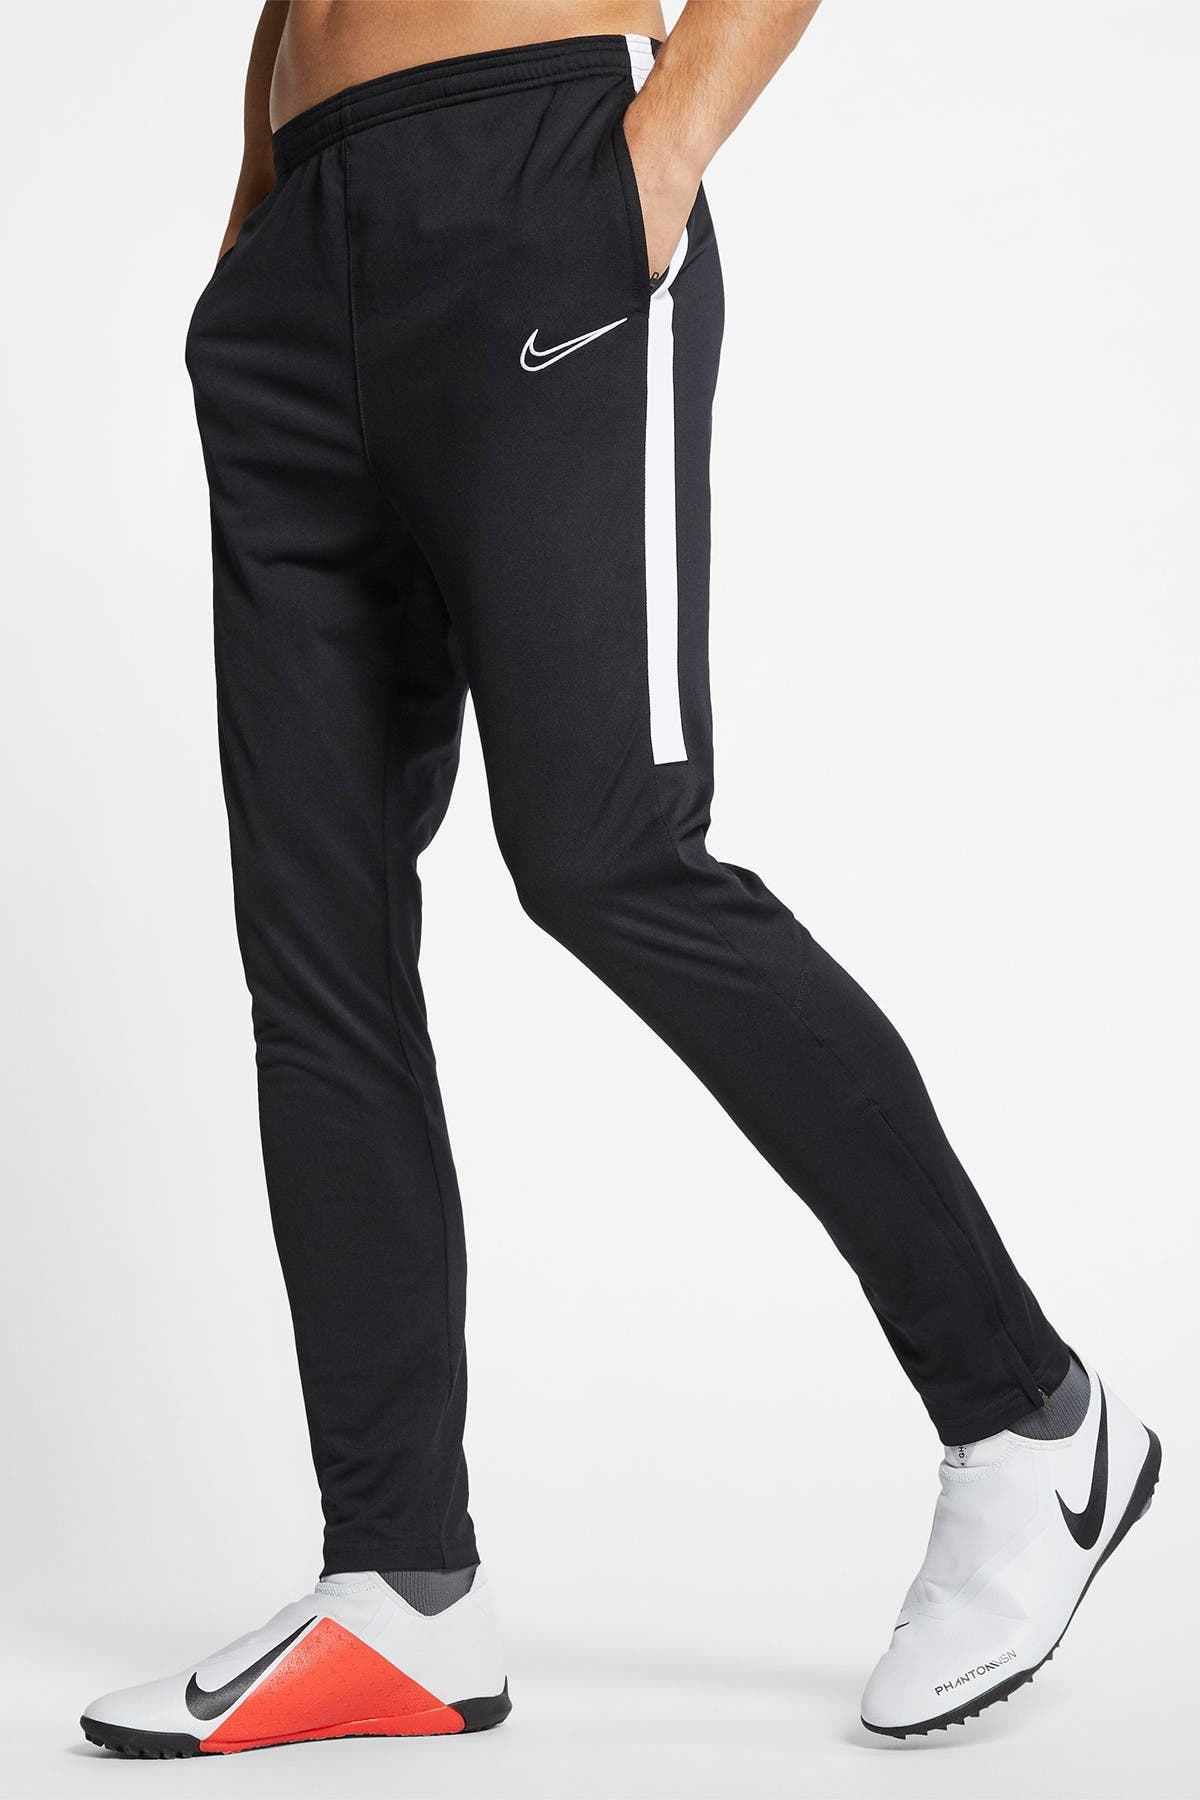 Image of Nike Dri-FIT Academy Soccer Pants